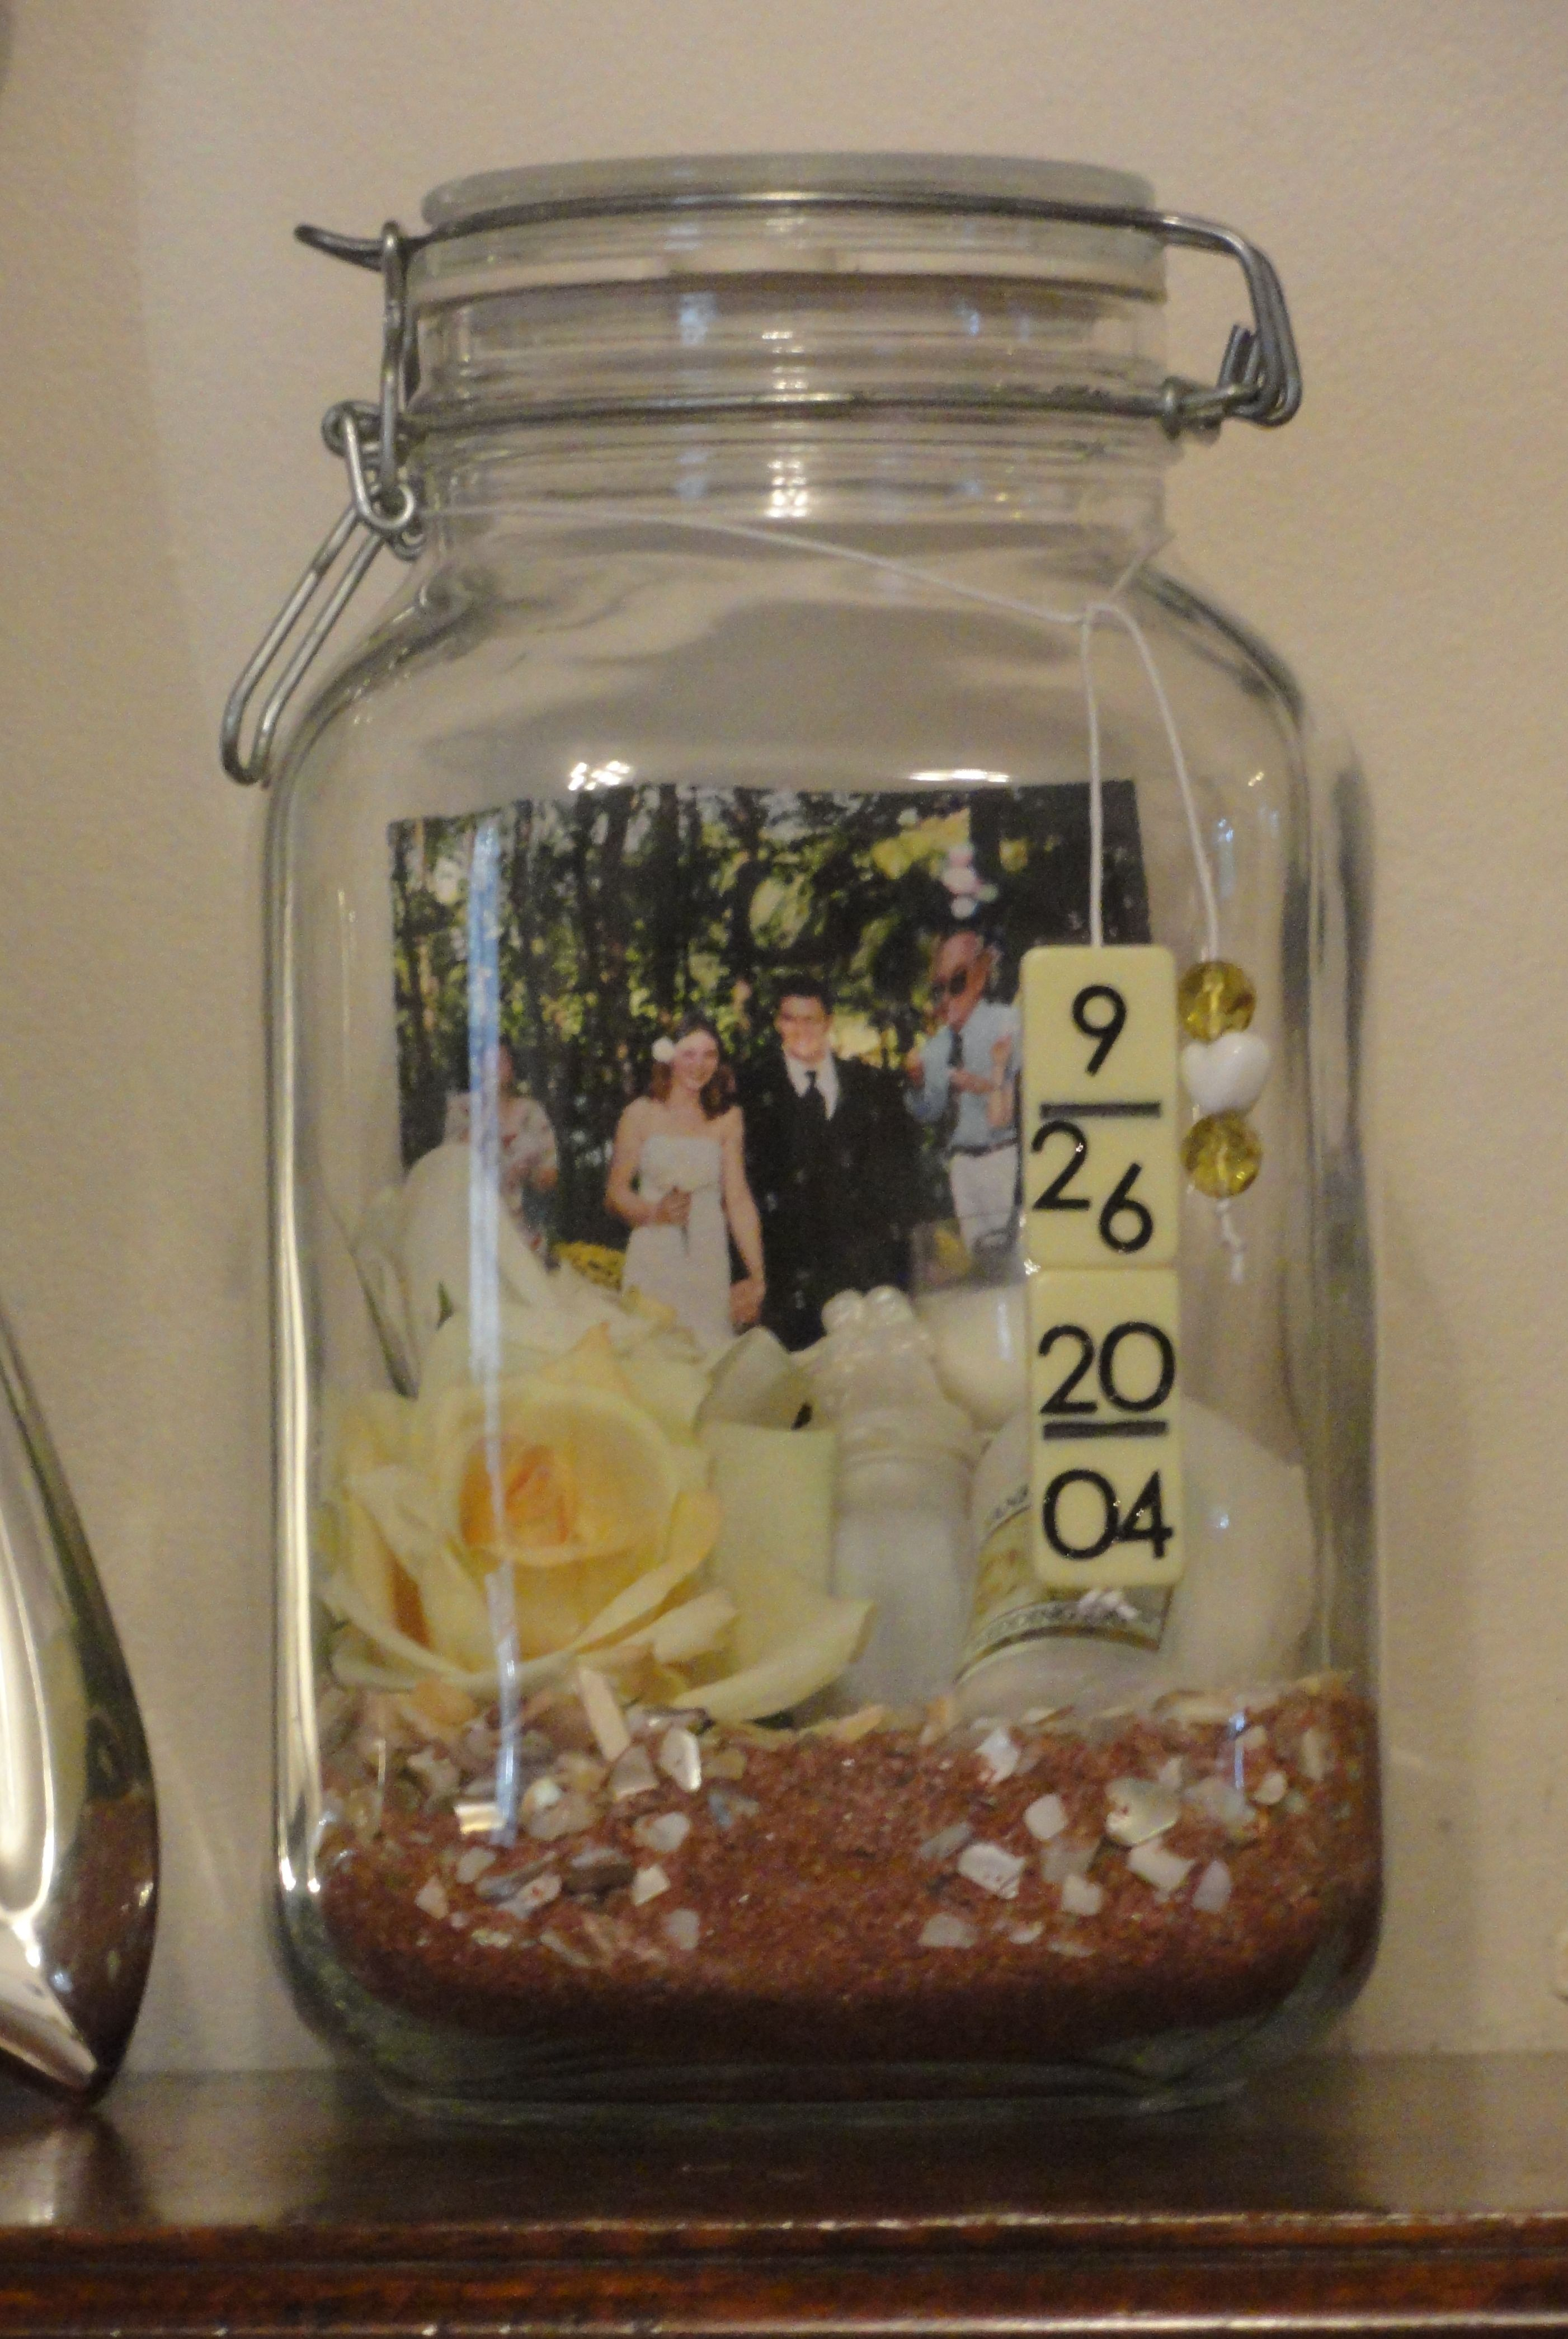 pinterest mason jar bridal shower favors%0A Wedding Memory Jar filled with mementos  u     the date is made from dominos  I  like this idea and I have mason jars to do it with